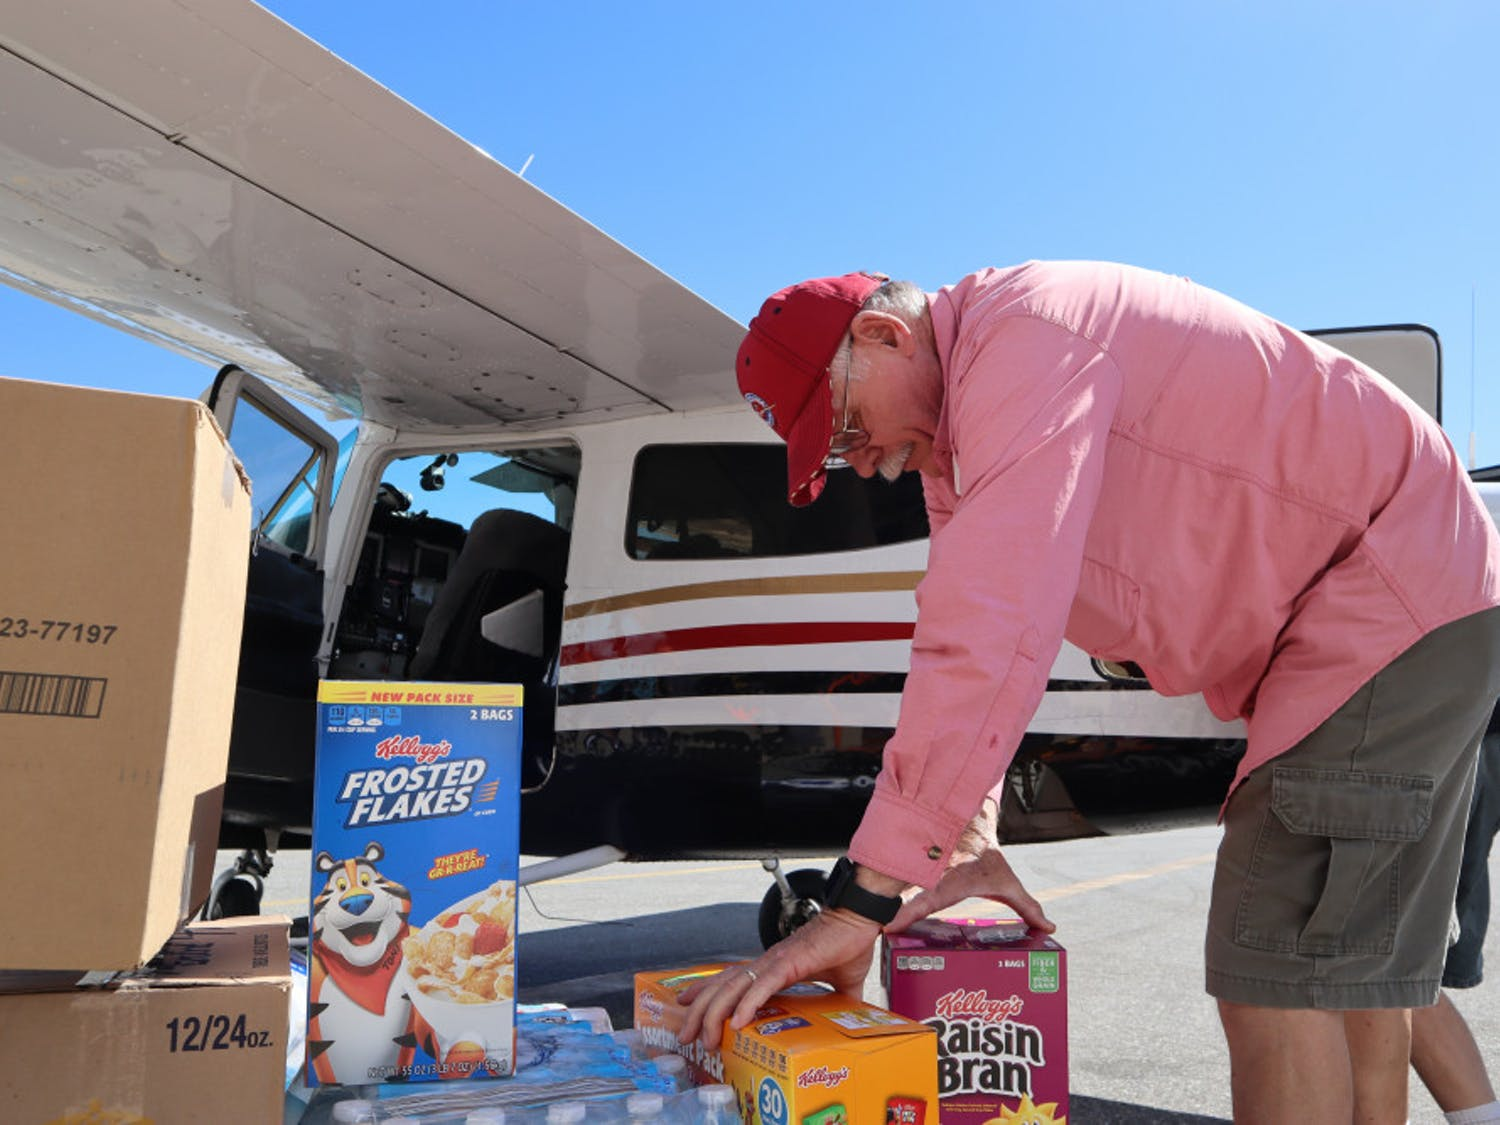 Pilot Mark Creighton, of Port Aransas, Texas, loads nonperishable food onto a plane headed to Appalachia, Florida, for Operation Airdrop. His home flooded during Hurricane Harvey, and he's helped other victims of hurricanes through Operation Airdrop since.